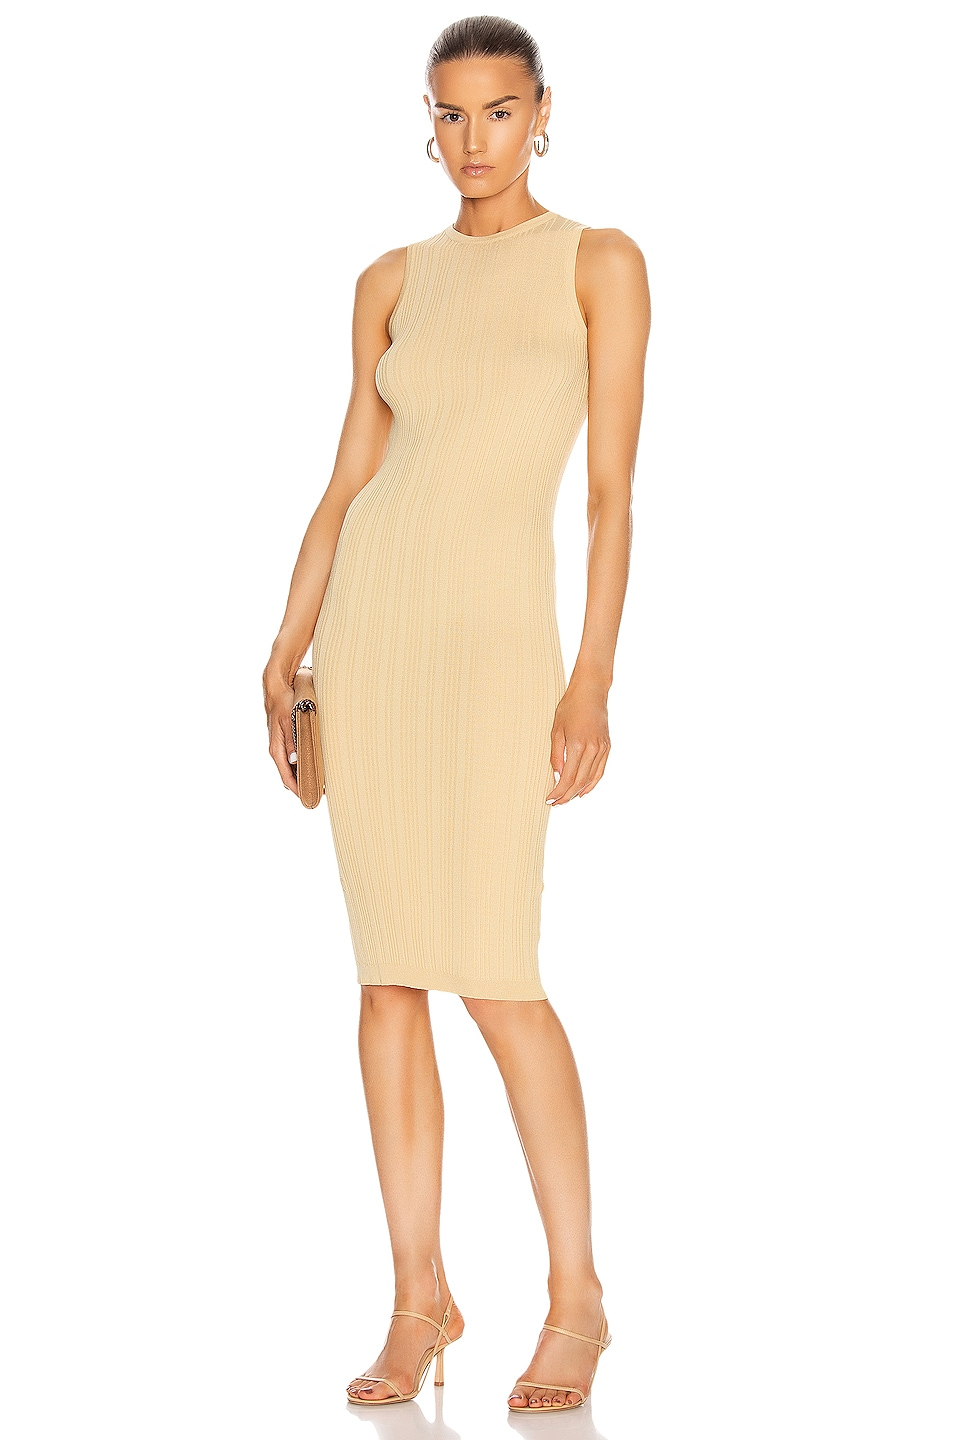 Image 1 of REMAIN Gere Sleeveless Knit Dress in Italian Straw